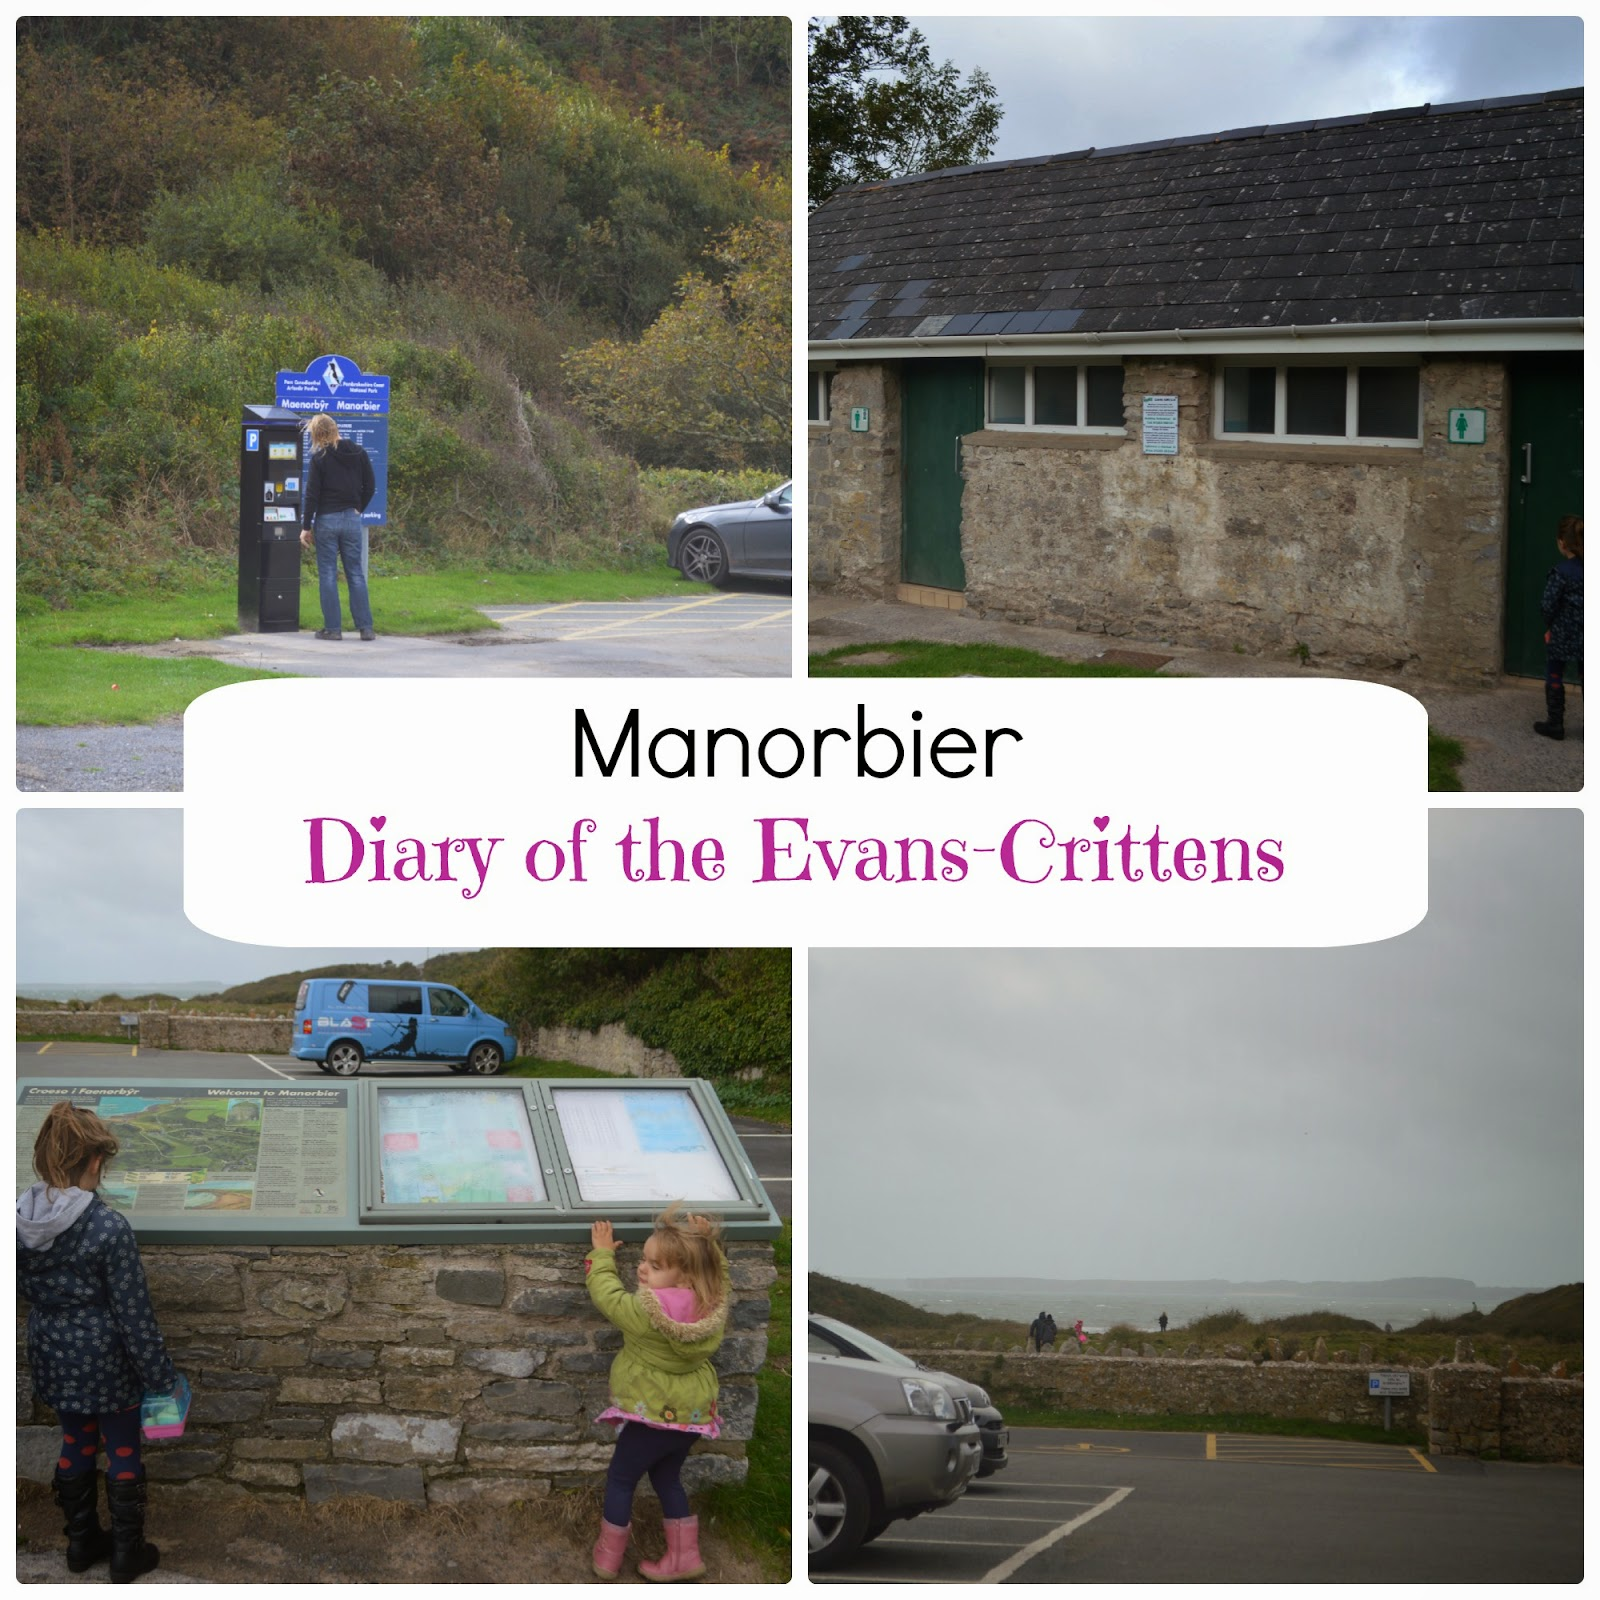 Manorbier by Diary of the Evans-Crittens